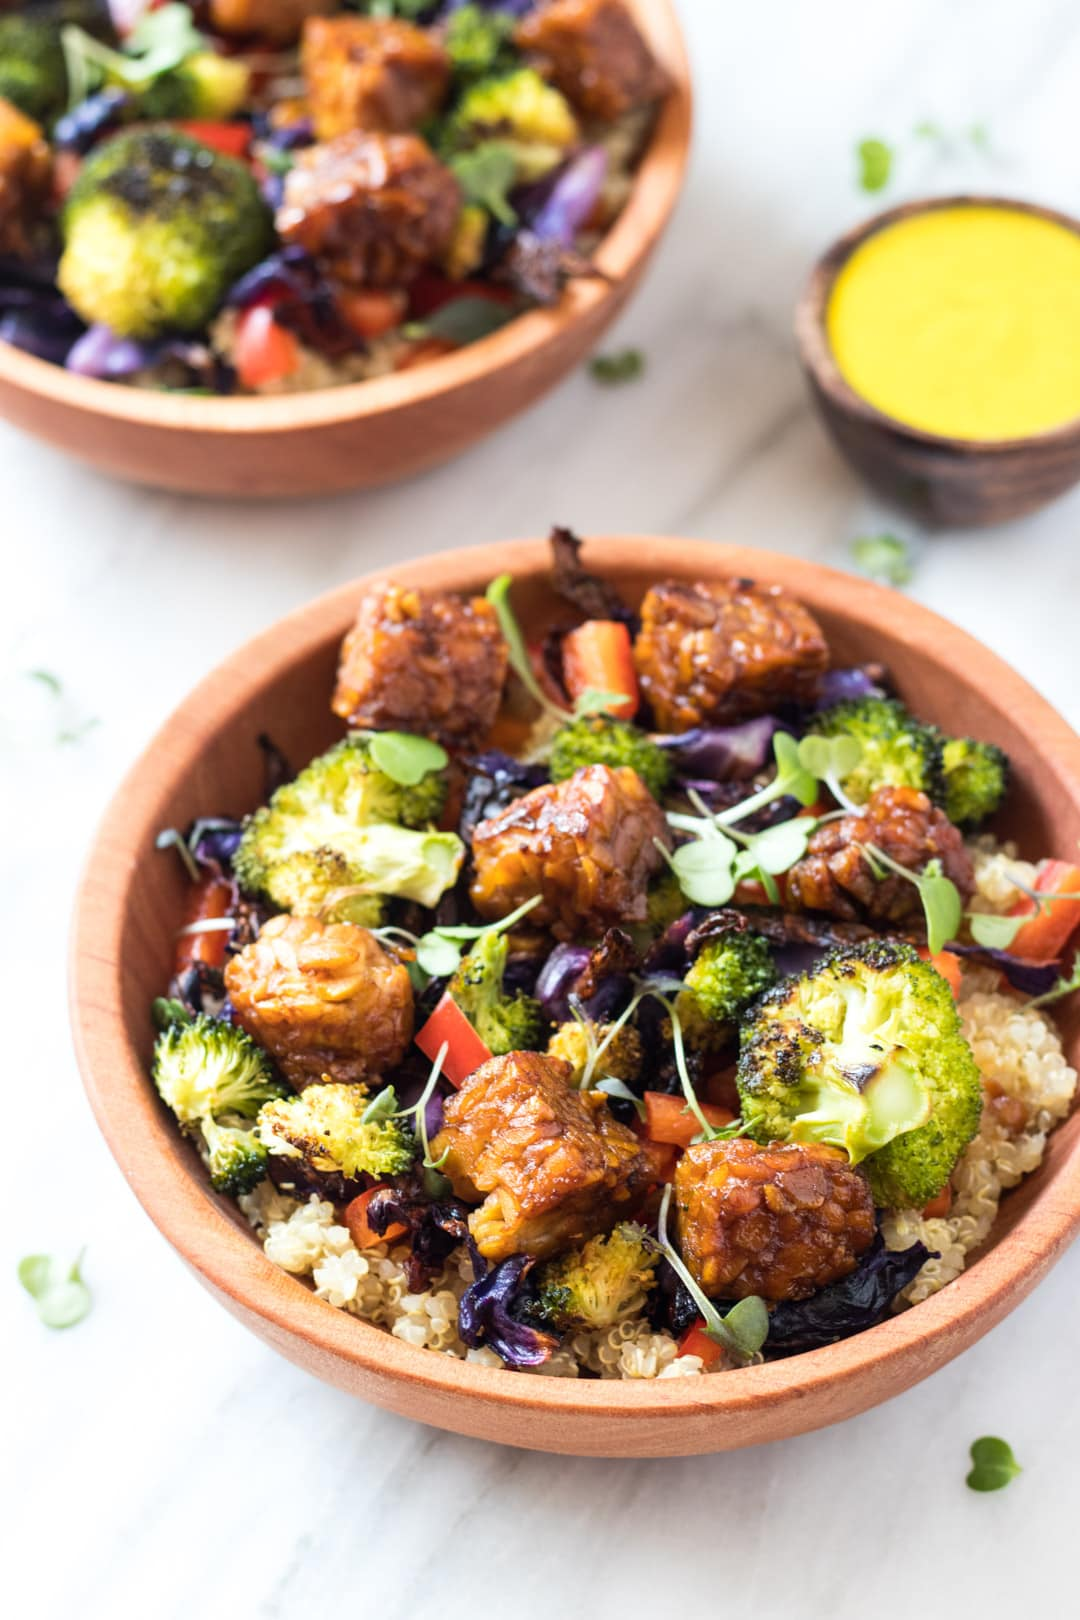 Two wooden bowls filled with low FODMAP rainbow bliss bowls or quinoa with roasted broccoli, cabbage, red pepper, and optional tempeh. There is also a small wooden dish filled with turmeric-tahini dressing.